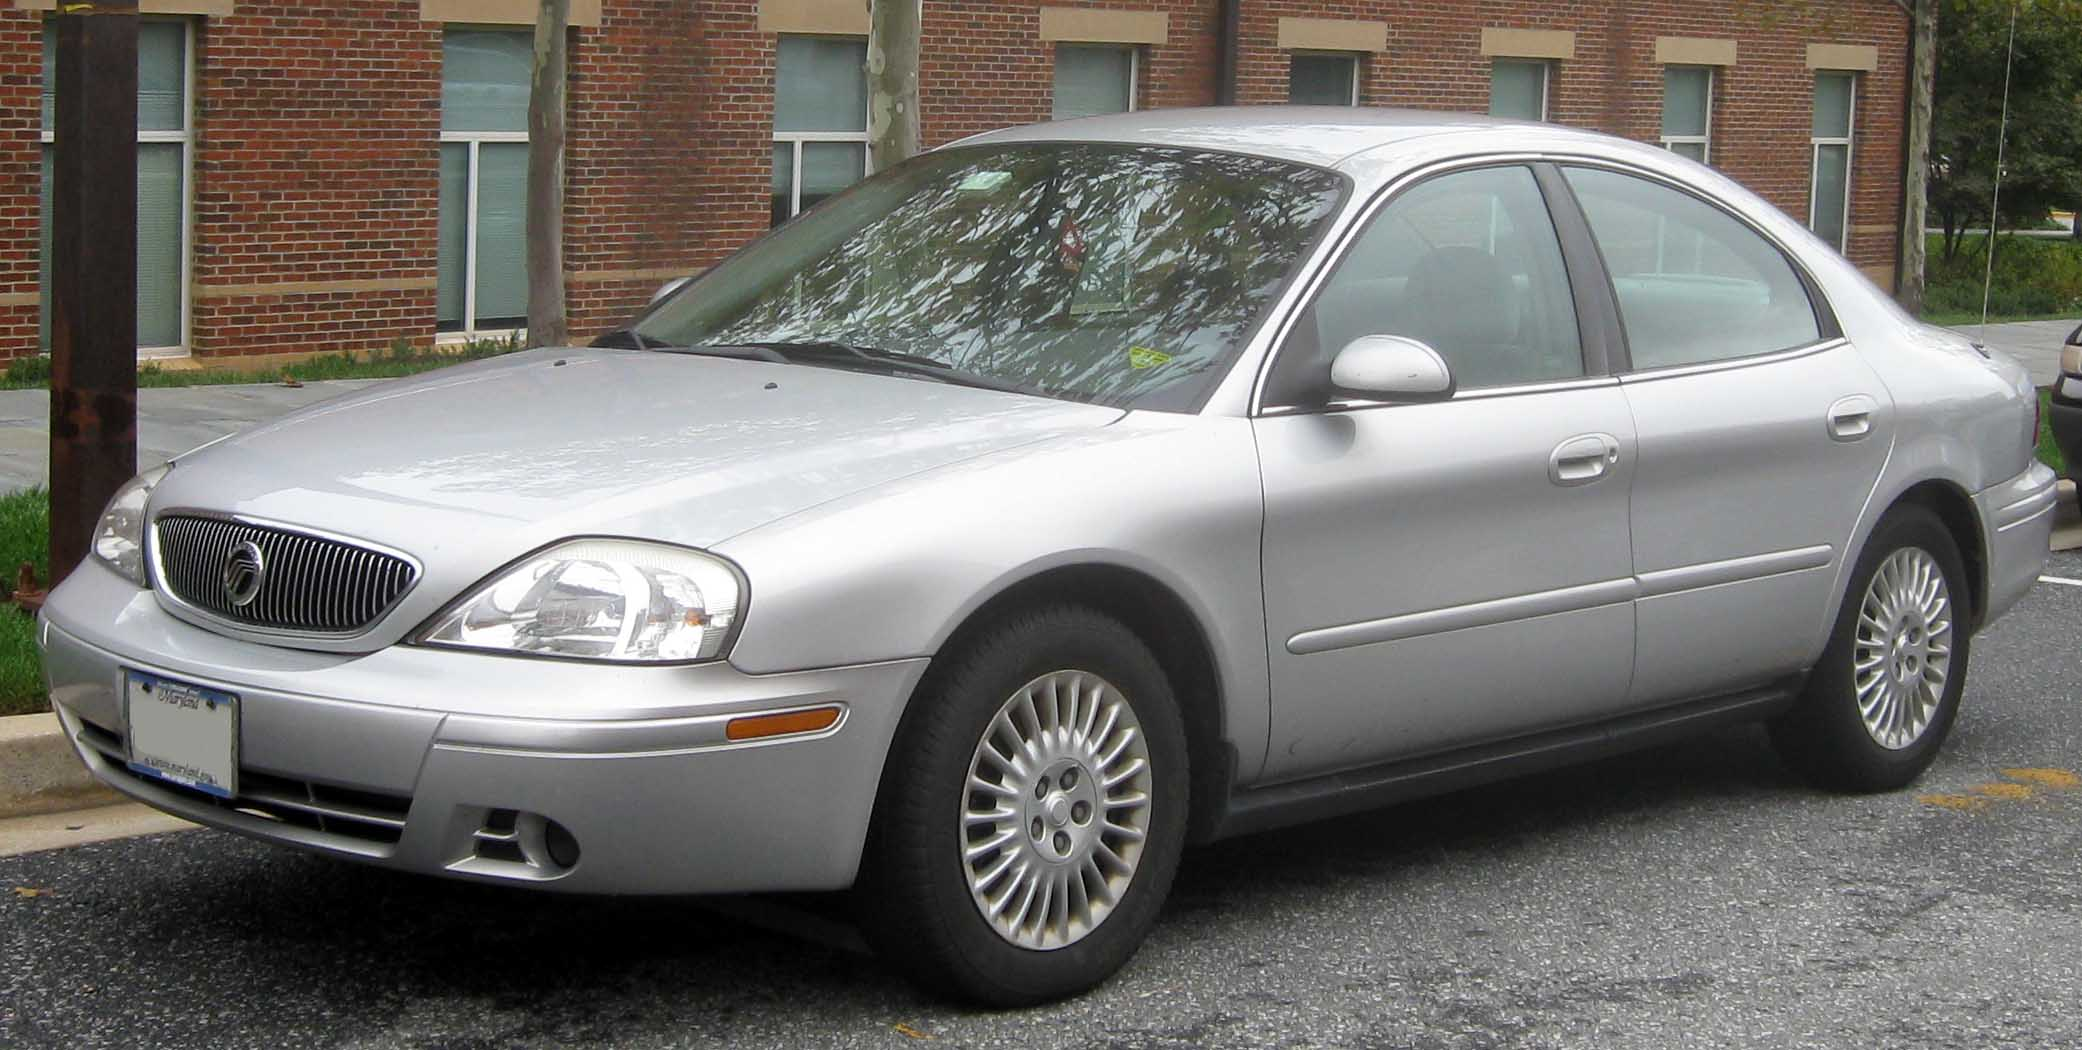 Mercury Sable #15